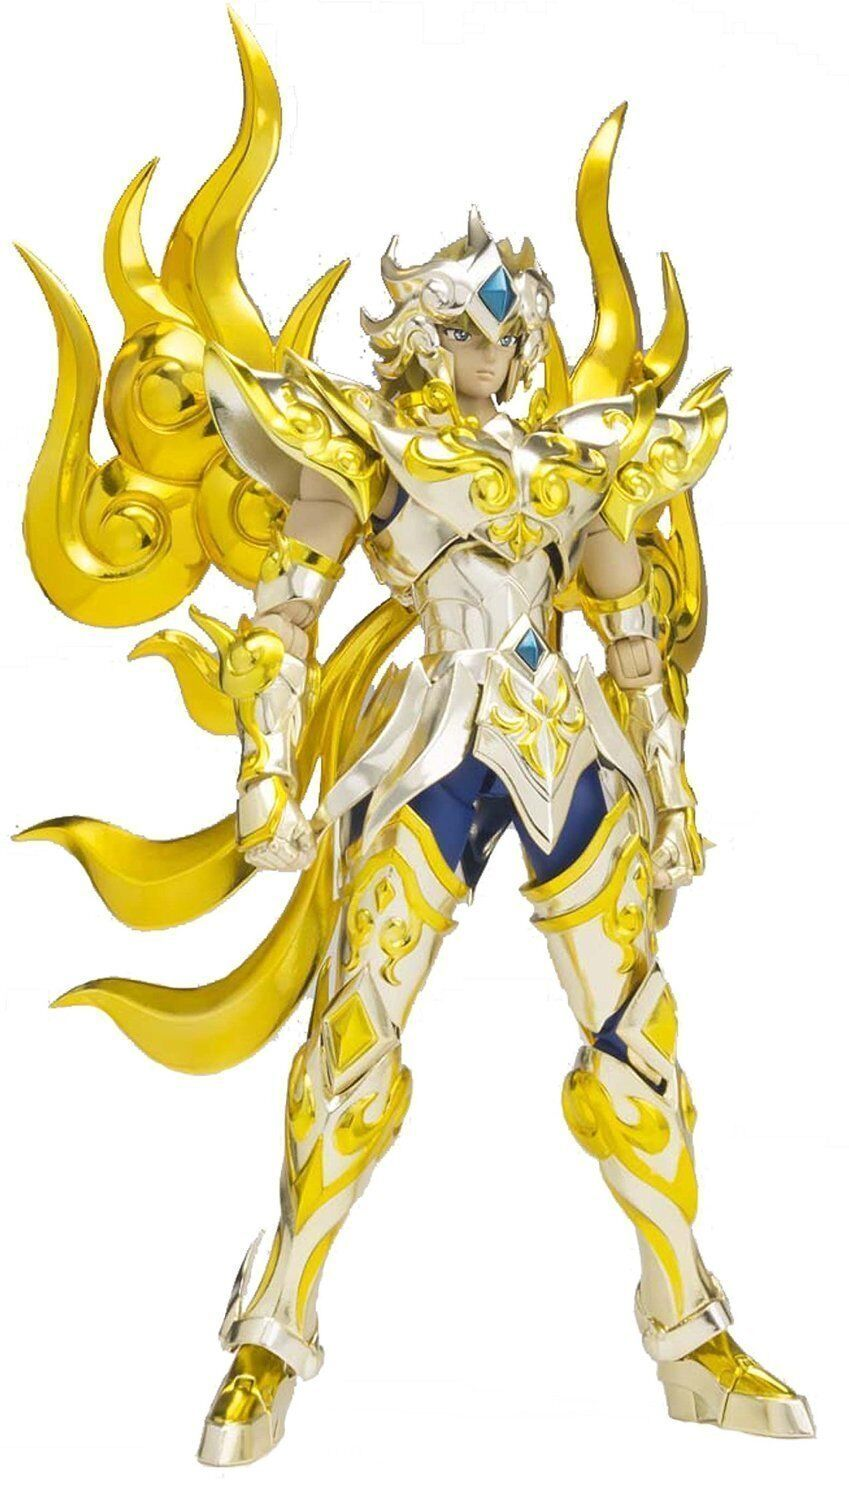 Bandai Saint Seiya Cloth Myth EX Soul of Gold Leo Aiolia (God Cloth)